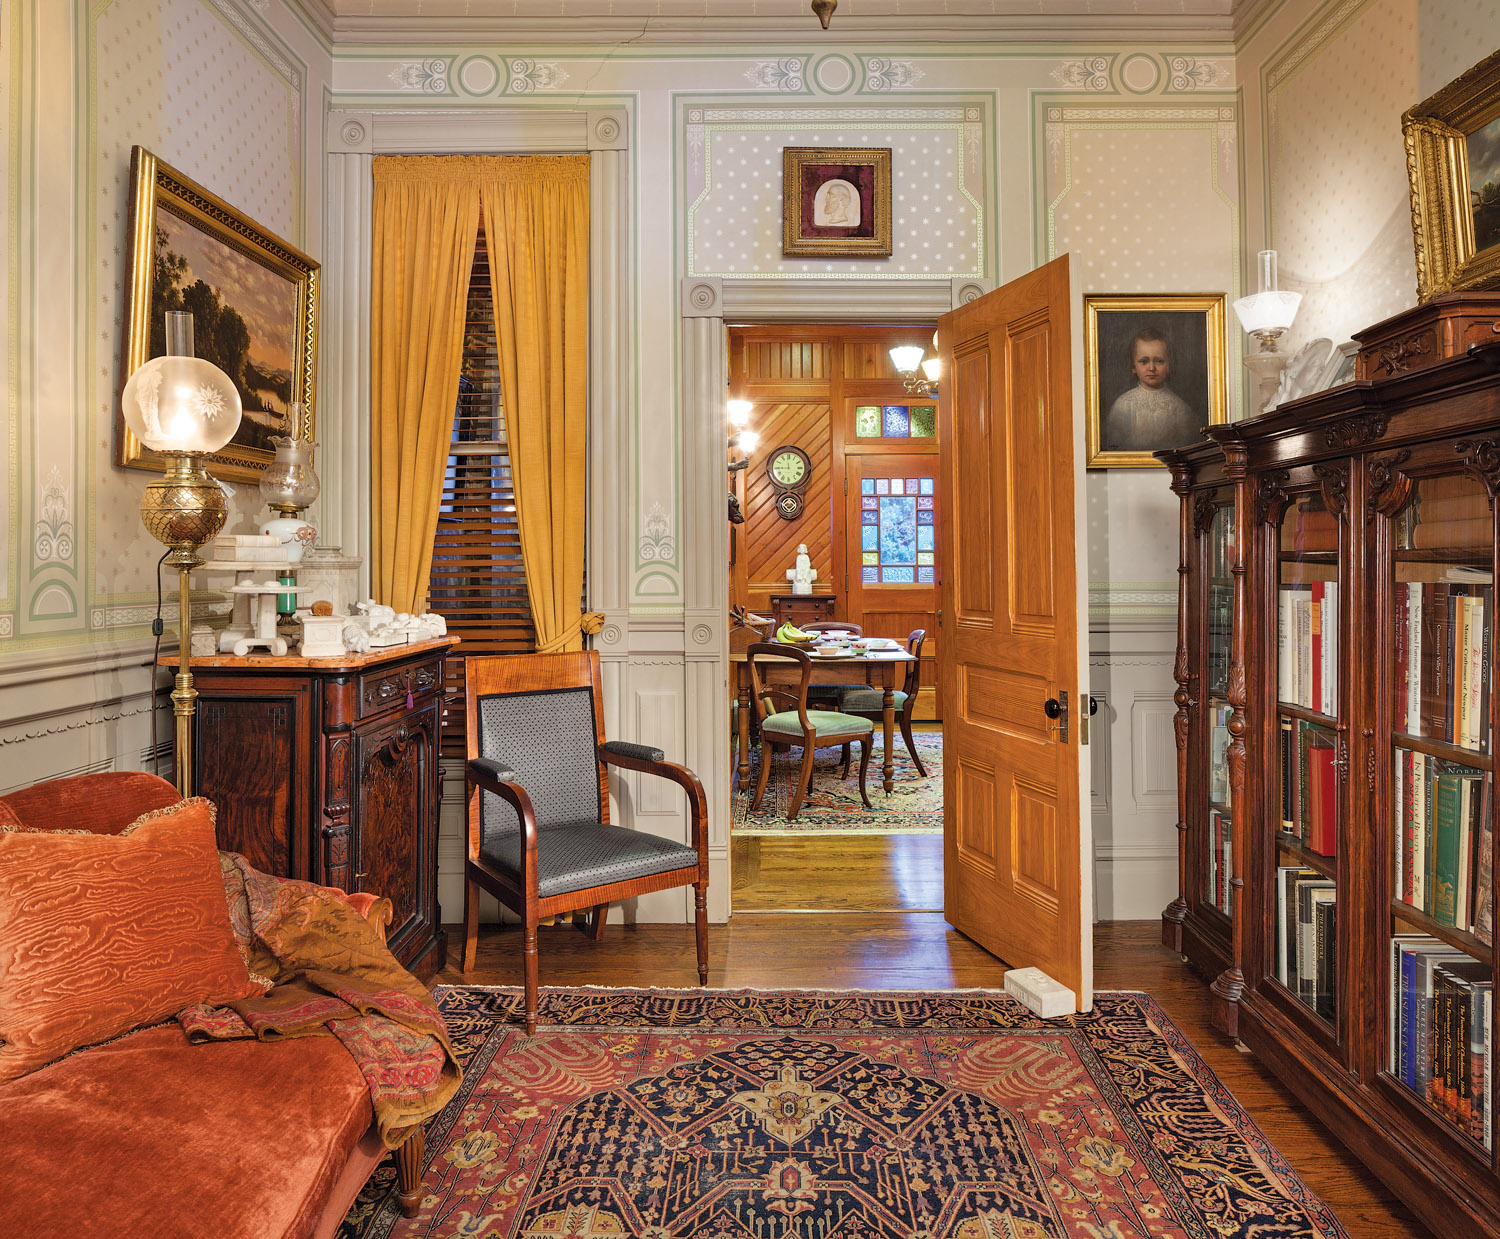 Decorated with Renaissance Revival furniture and Bradbury & Bradbury's Victorian-era 'Neo-Classical' papers, the front parlor is the most formal room. The Aesthetic Movement kitchen is beyond the door.